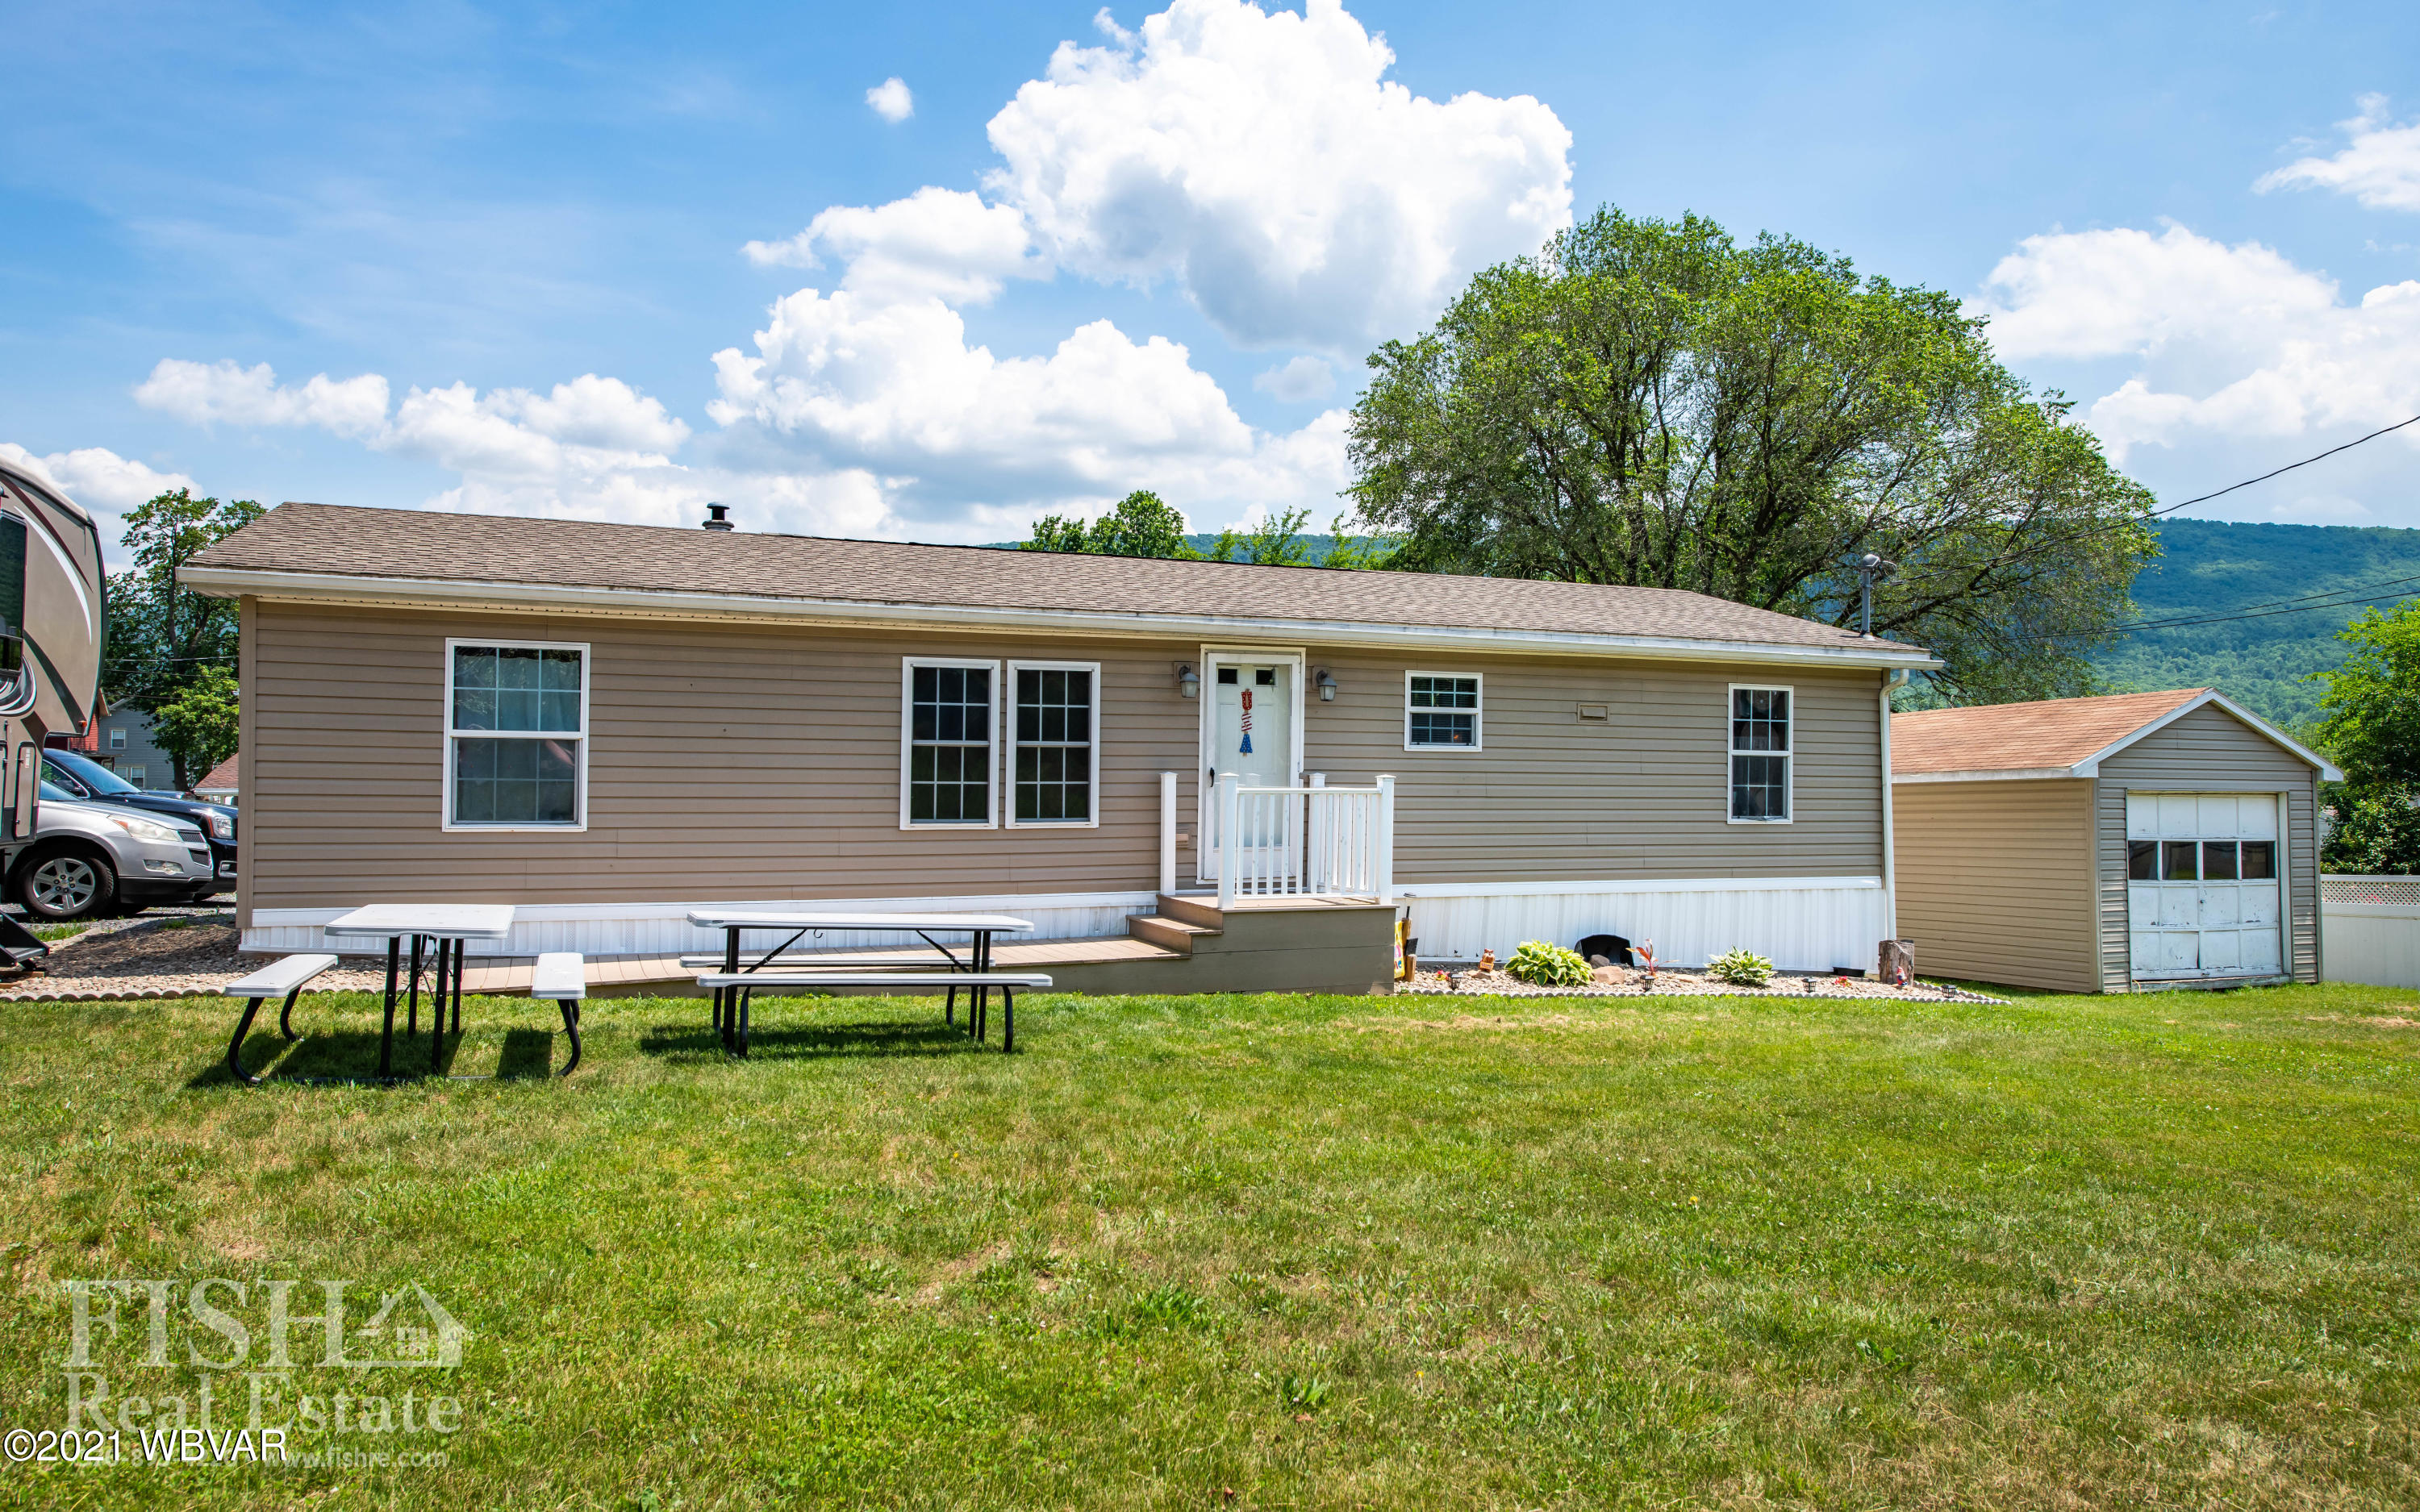 324 FREDERICK STREET, Flemington, PA 17745, 3 Bedrooms Bedrooms, ,2 BathroomsBathrooms,Residential,For sale,FREDERICK,WB-92739